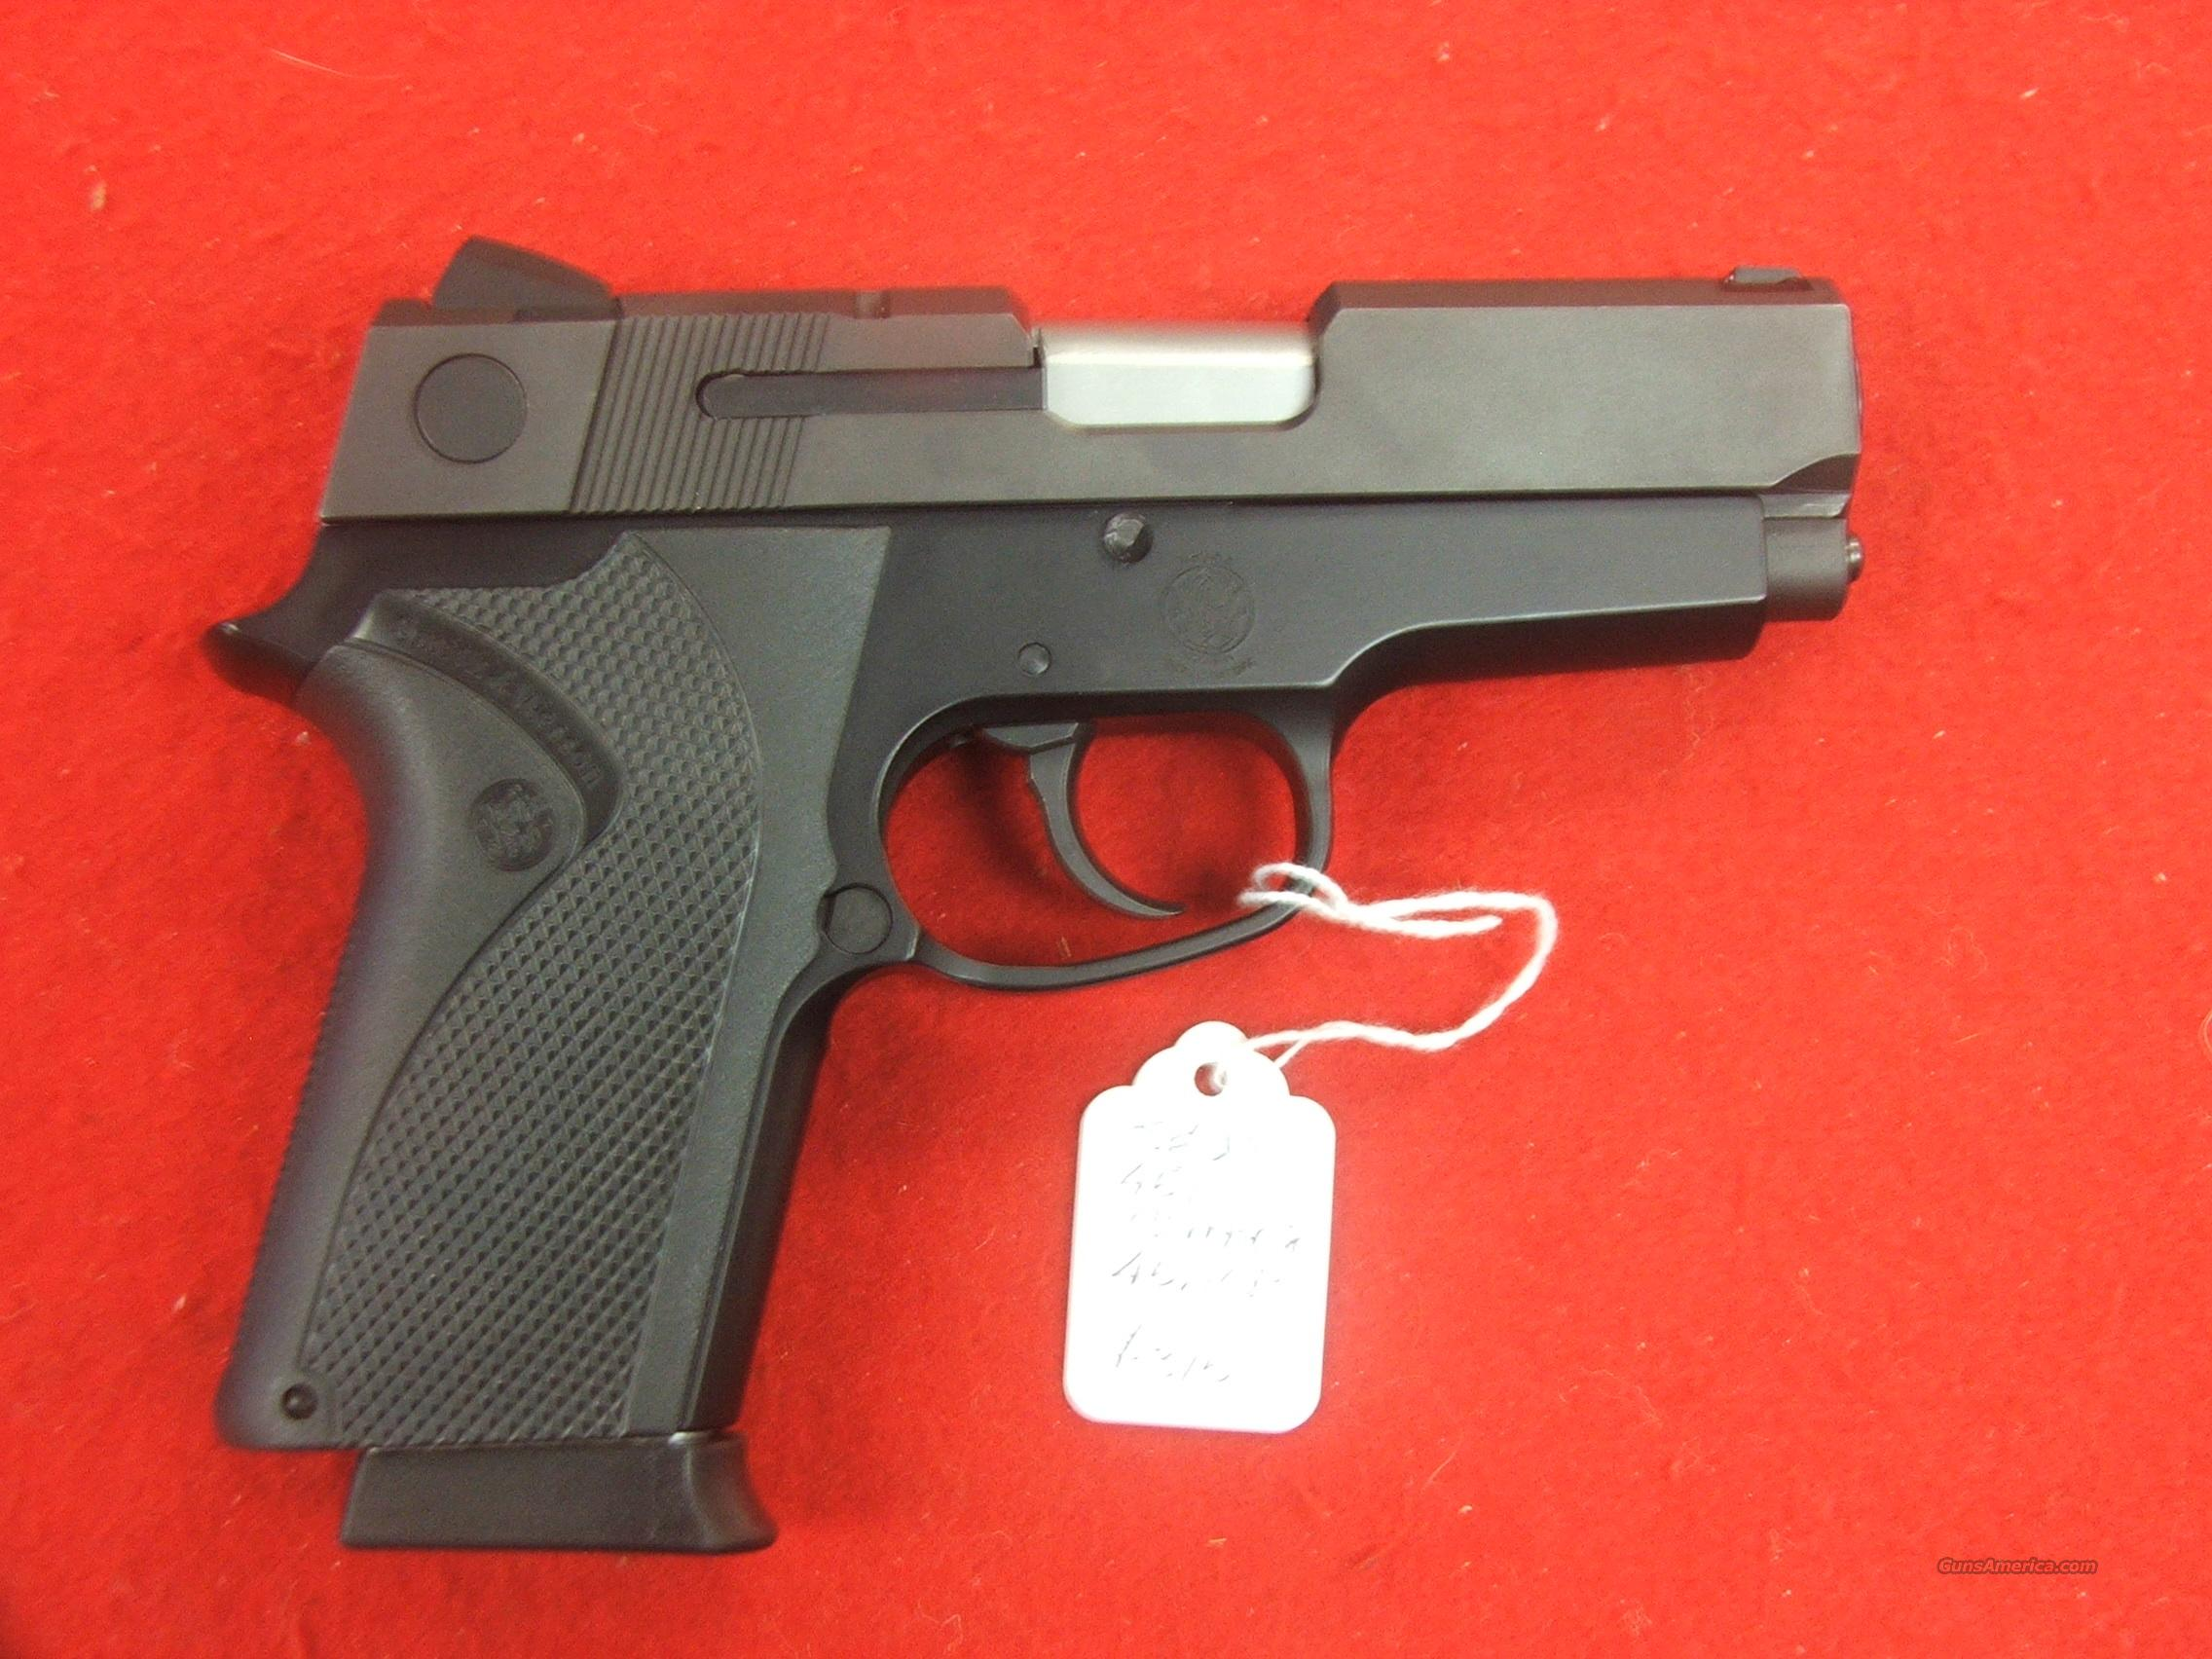 Smith & Wesson 457 Compact, 45ACP  Guns > Pistols > Smith & Wesson Pistols - Autos > Alloy Frame